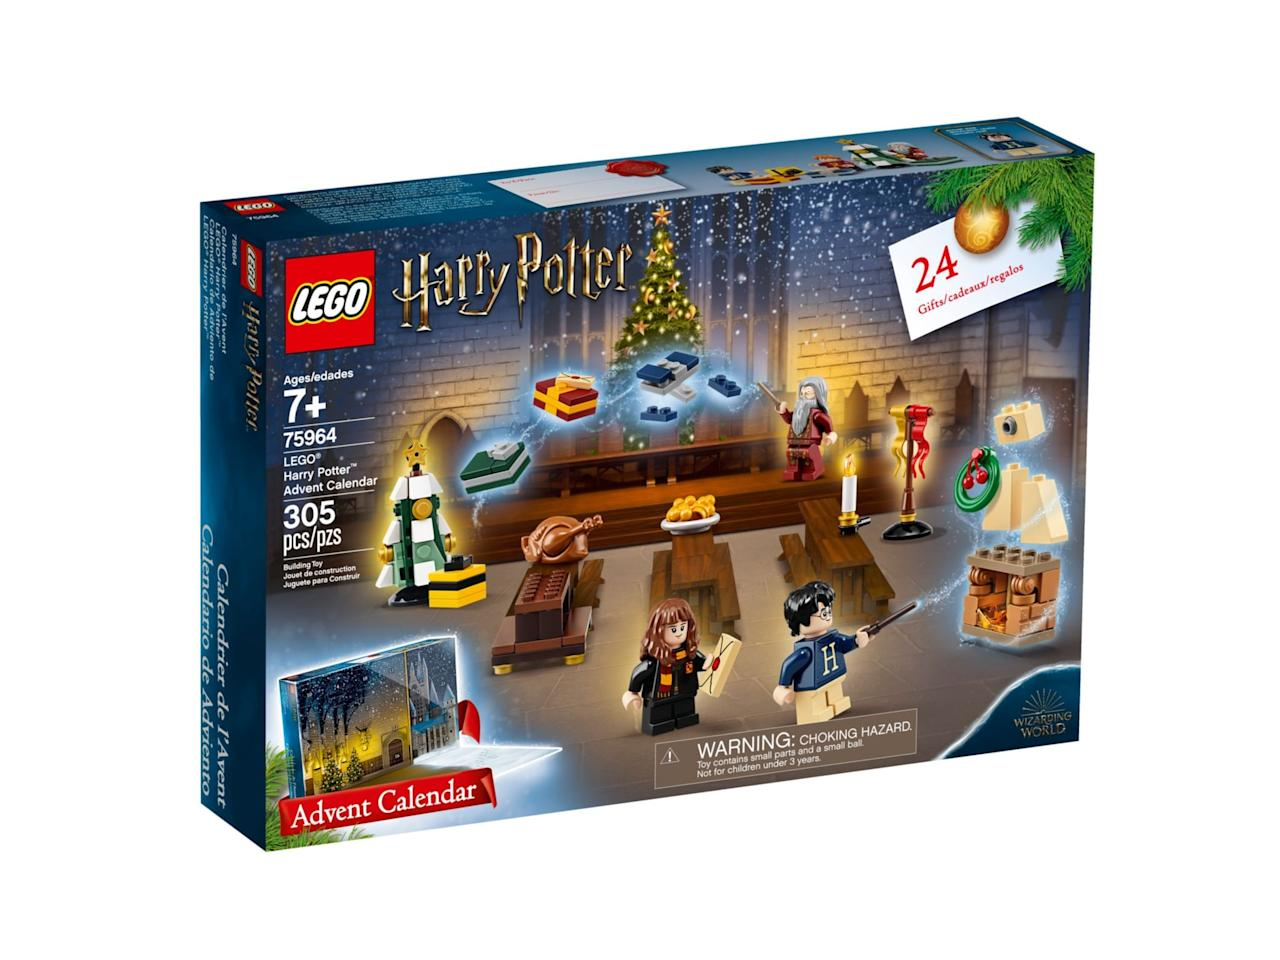 "<p><a href=""https://www.popsugar.com/buy/Lego-Harry-Potter-Advent-Calendar-487631?p_name=Lego%20Harry%20Potter%20Advent%20Calendar&retailer=lego.com&pid=487631&price=40&evar1=moms%3Aus&evar9=46579350&evar98=https%3A%2F%2Fwww.popsugar.com%2Fphoto-gallery%2F46579350%2Fimage%2F46579351%2FLego-Harry-Potter-Advent-Calendar&list1=gift%20guide%2Cstar%20wars%2Charry%20potter%2Clego%2Cparenting%20gift%20guide%2Cadvent%20calendars%2Ckid%20shopping&prop13=api&pdata=1"" rel=""nofollow"" data-shoppable-link=""1"" target=""_blank"" class=""ga-track"" data-ga-category=""Related"" data-ga-label=""https://www.lego.com/en-us/product/lego-harry-potter-advent-calendar-75964"" data-ga-action=""In-Line Links"">Lego Harry Potter Advent Calendar</a> ($40)</p>"